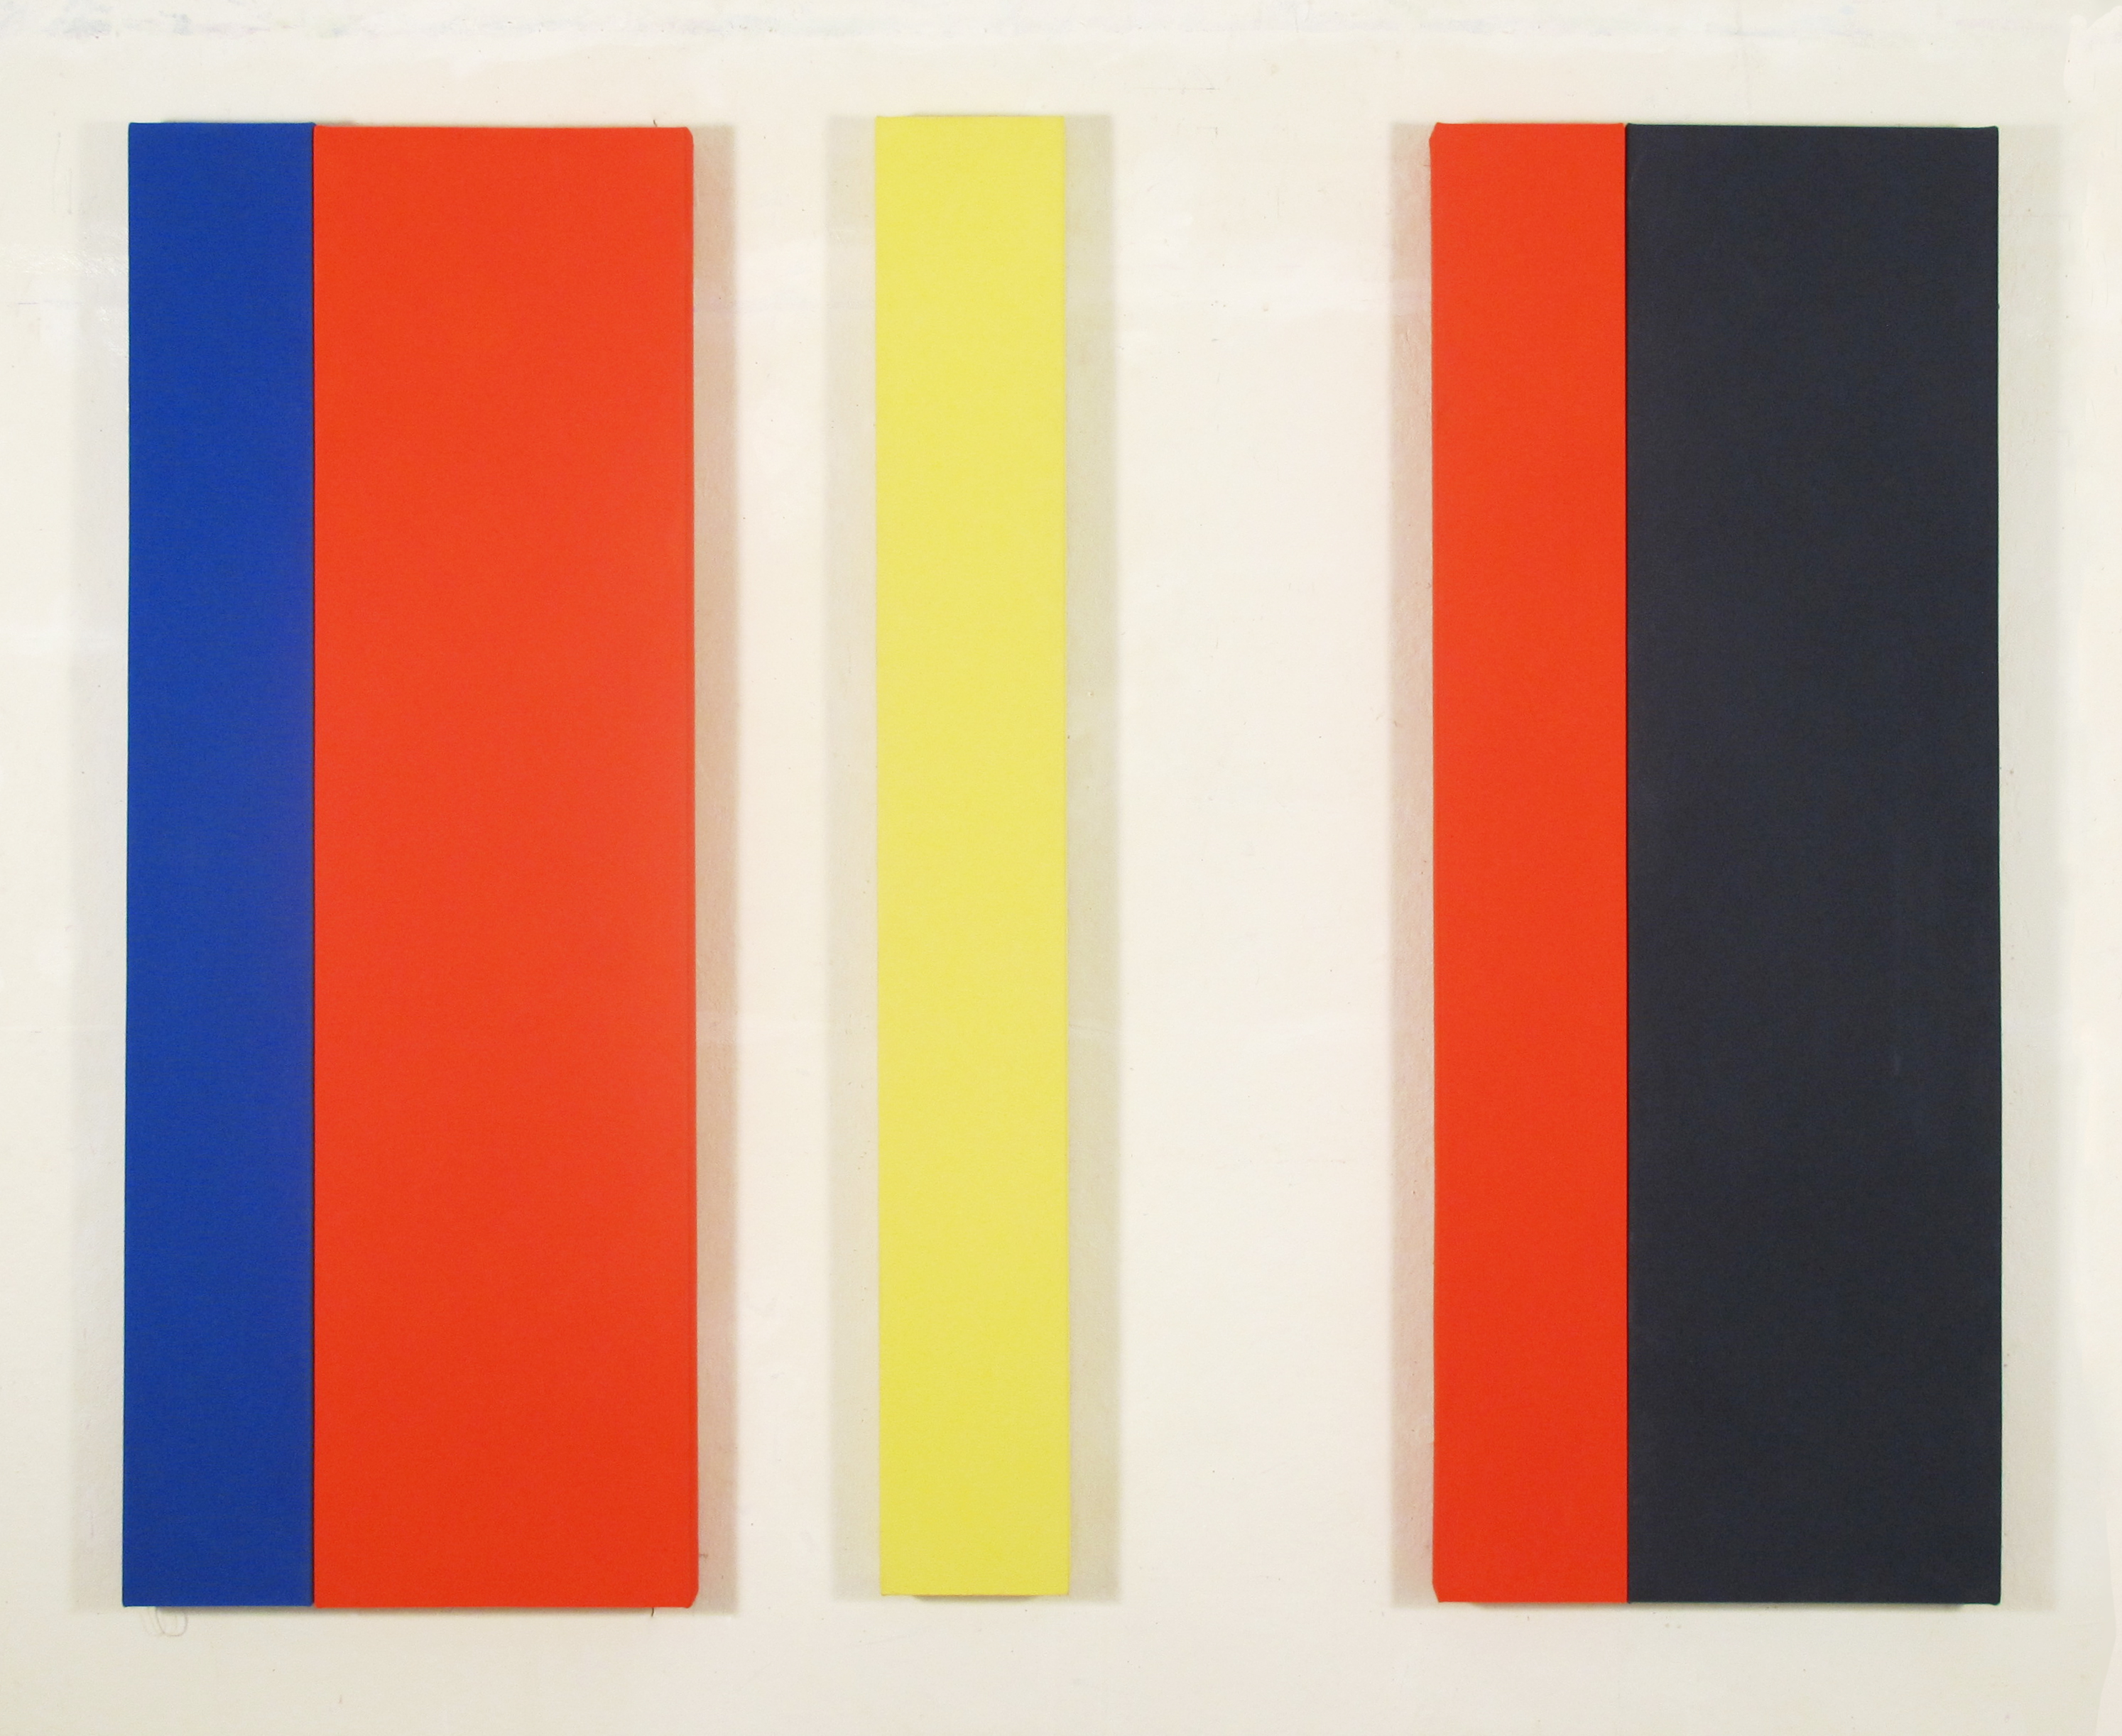 Shaw_Kendall_Tabasco, Acrylic on canvas, 5 panels, 48 x 60, 2013